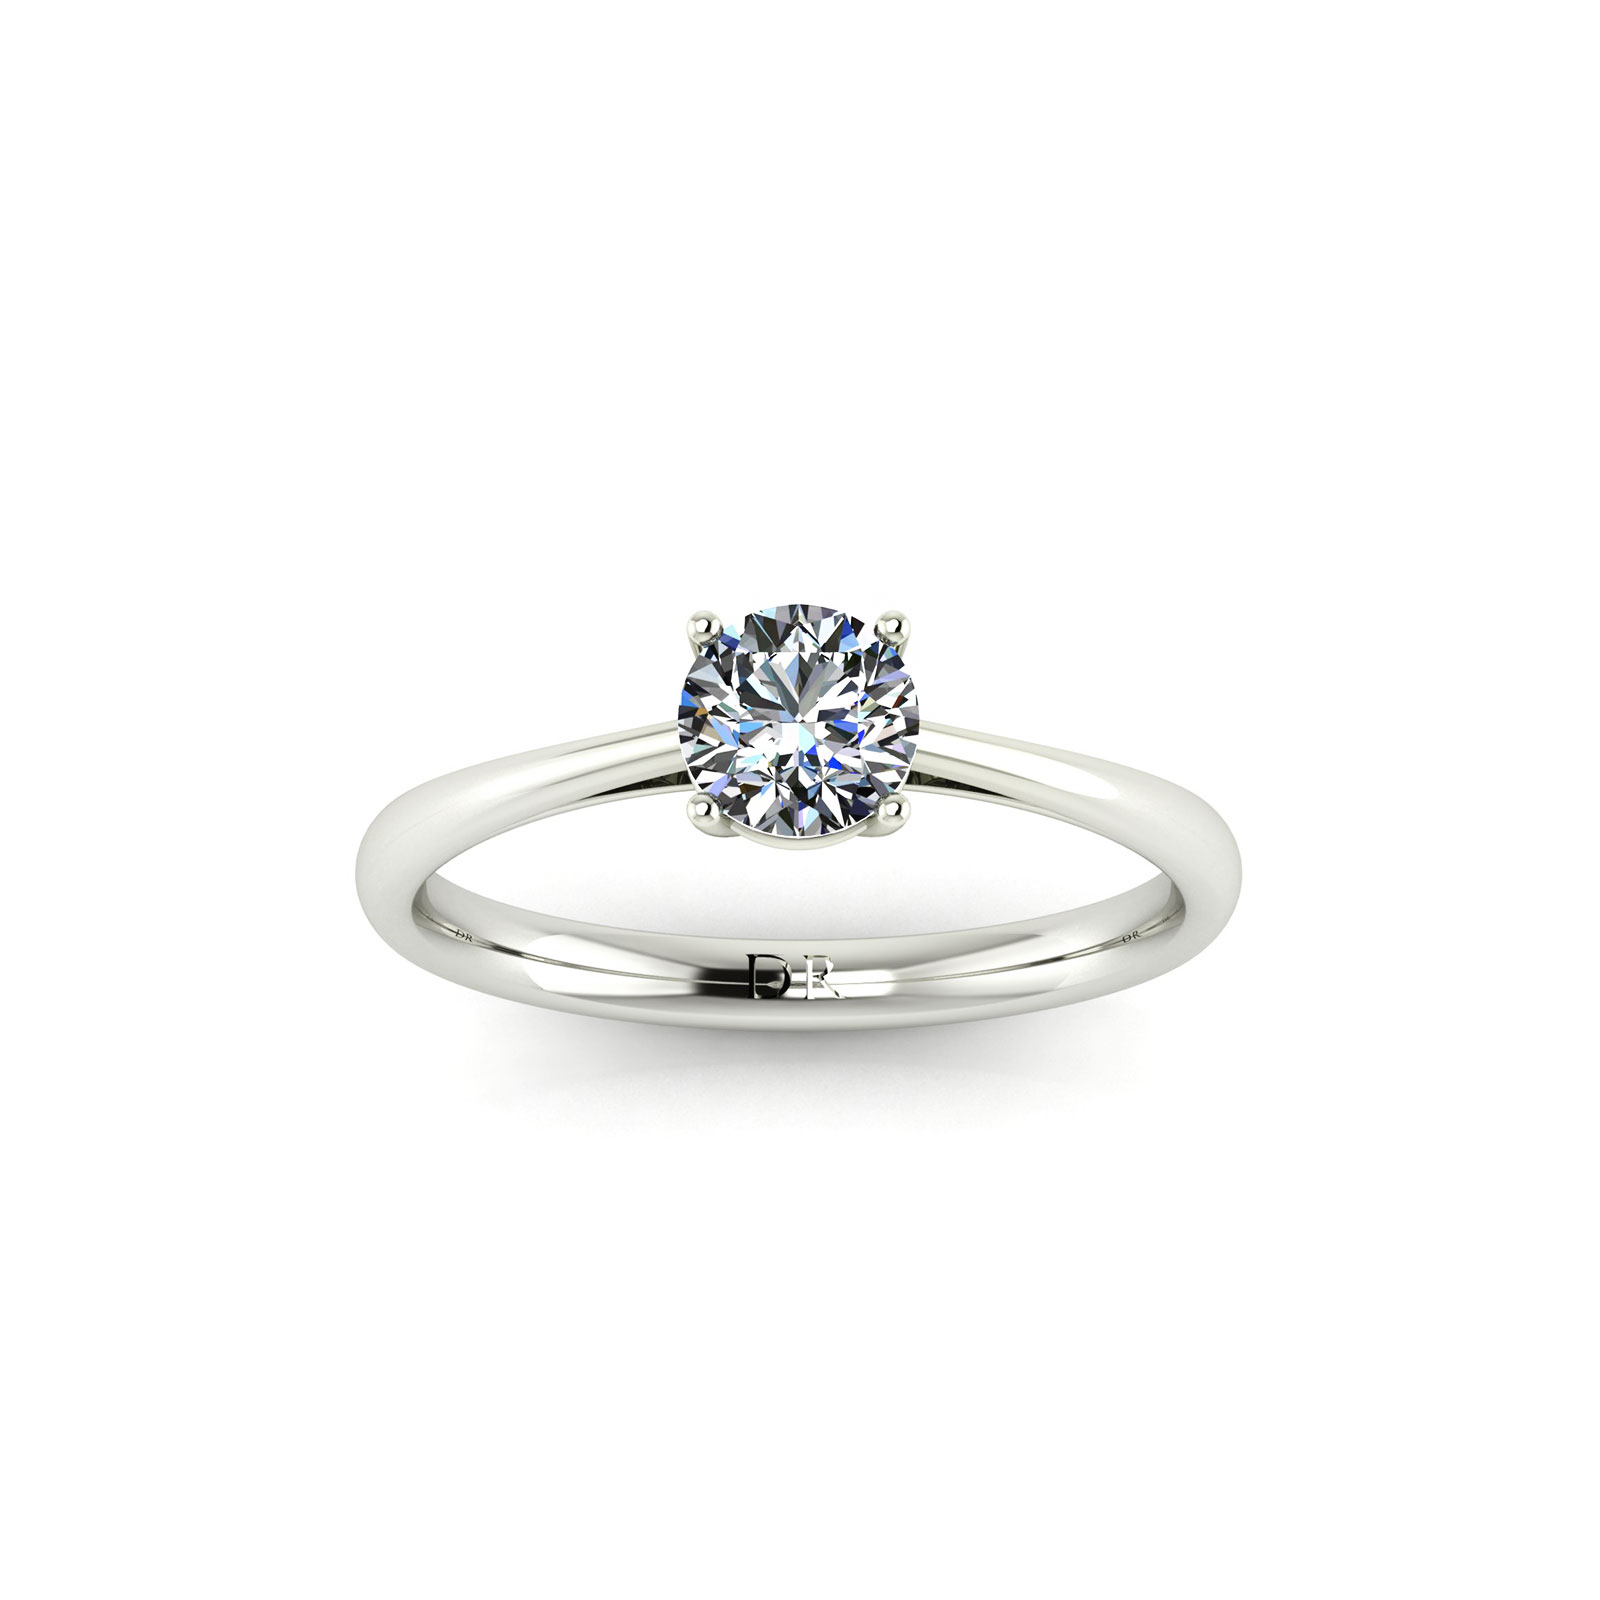 4-Prong Solitaire Engagement Ring (Top View) - Draco Diamonds